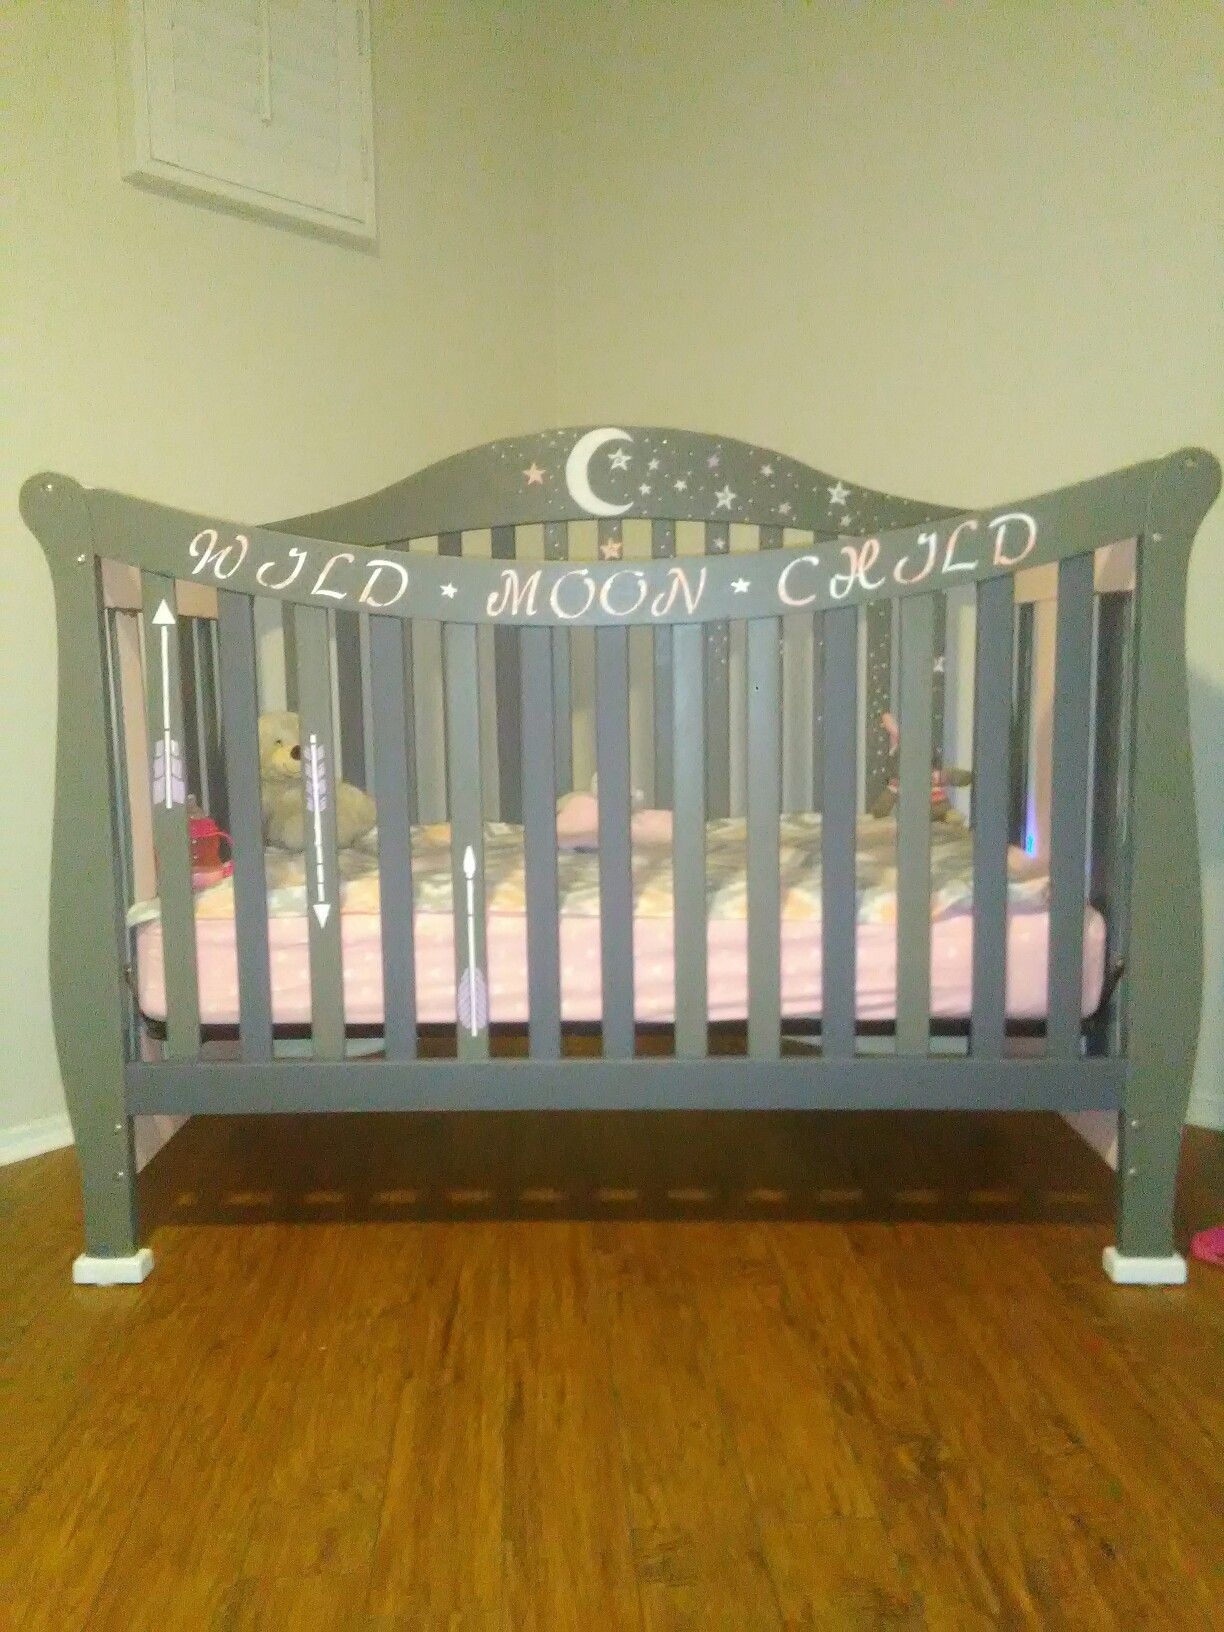 We Havenu0027t Seen A Crib That Has Been Personalized So We Personalized One  For My Daughter Using All Baby Safe Non Toxic Paint.